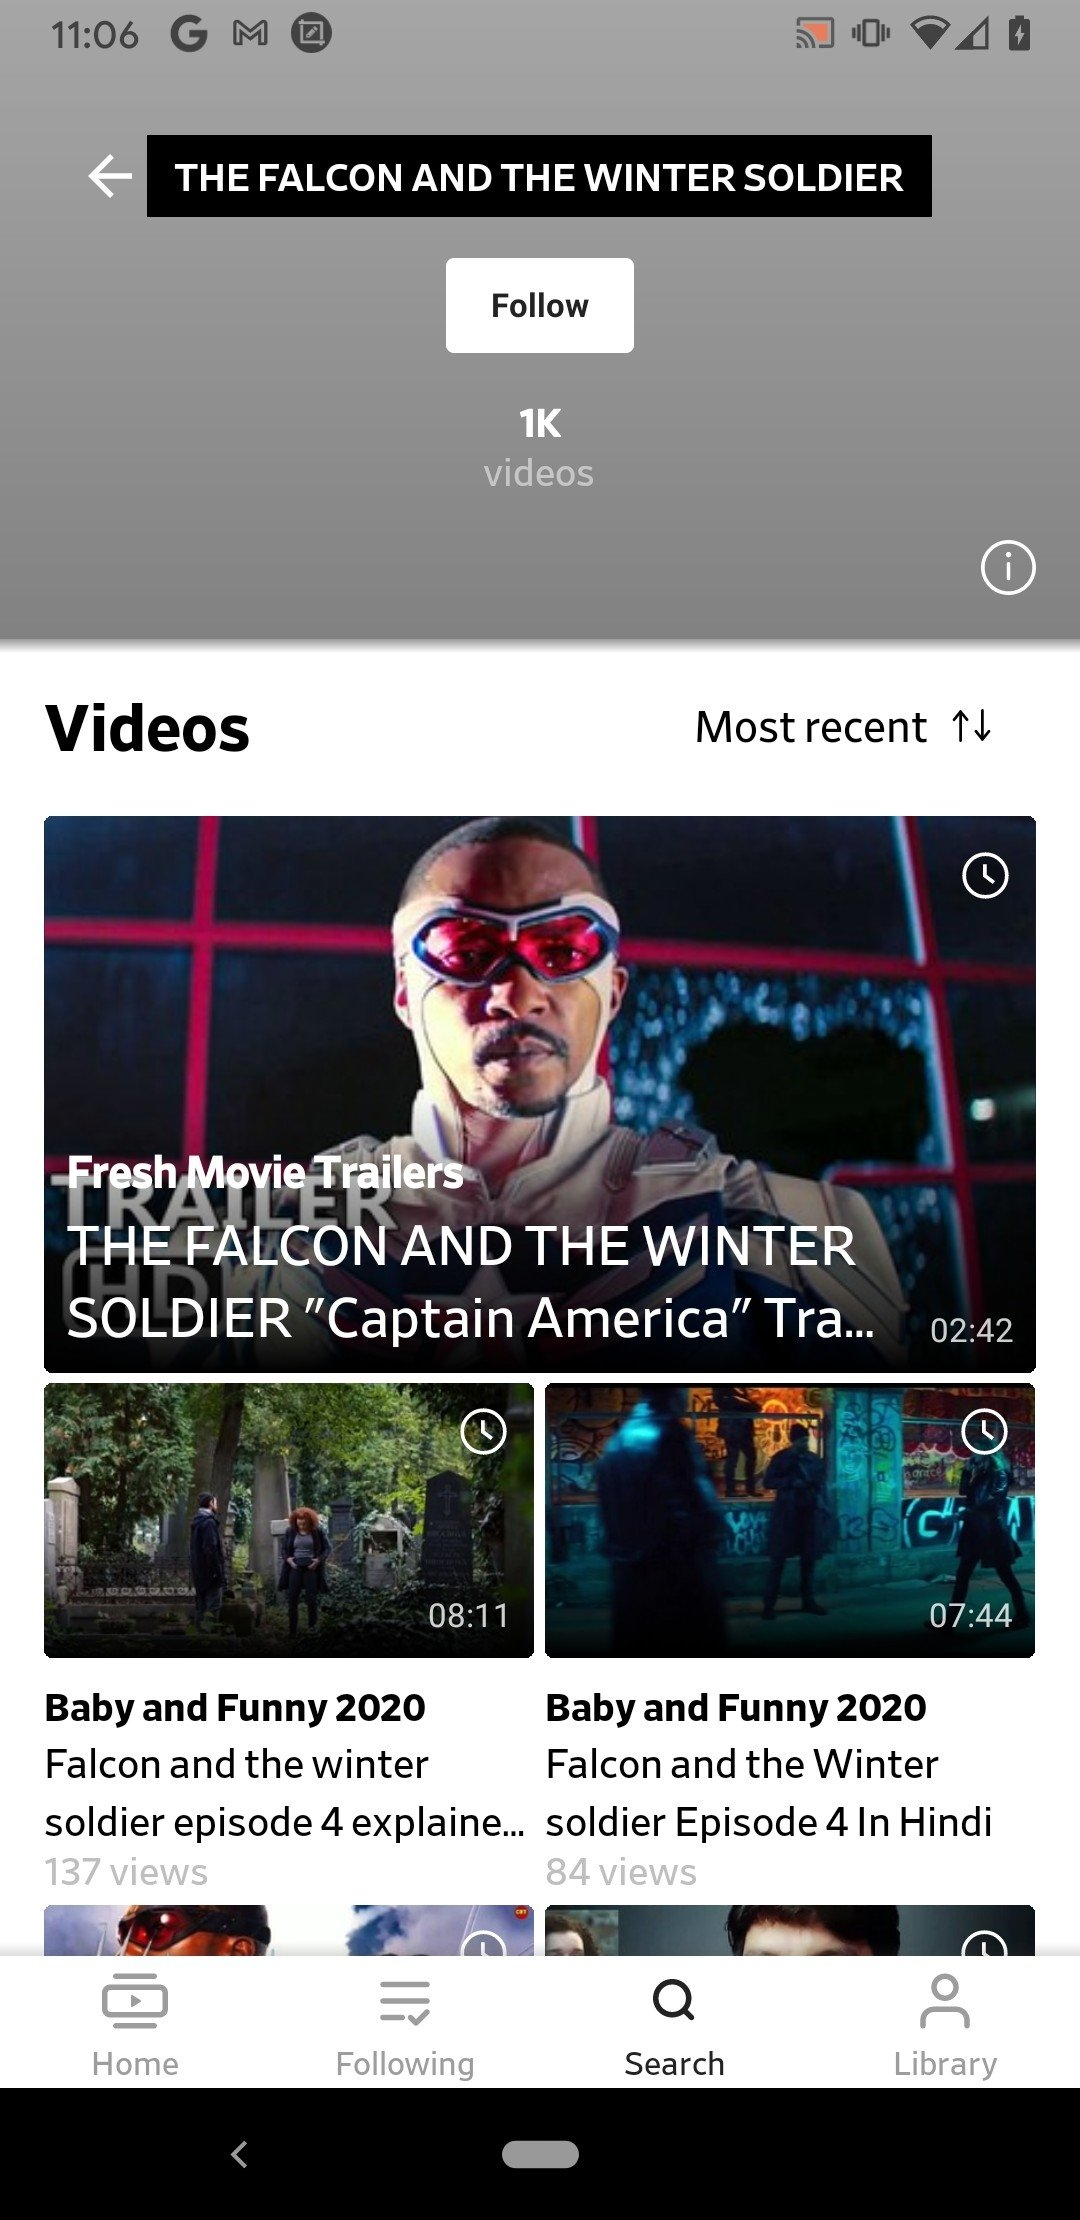 Download dailymotion 9498 apk for android | appvn android.